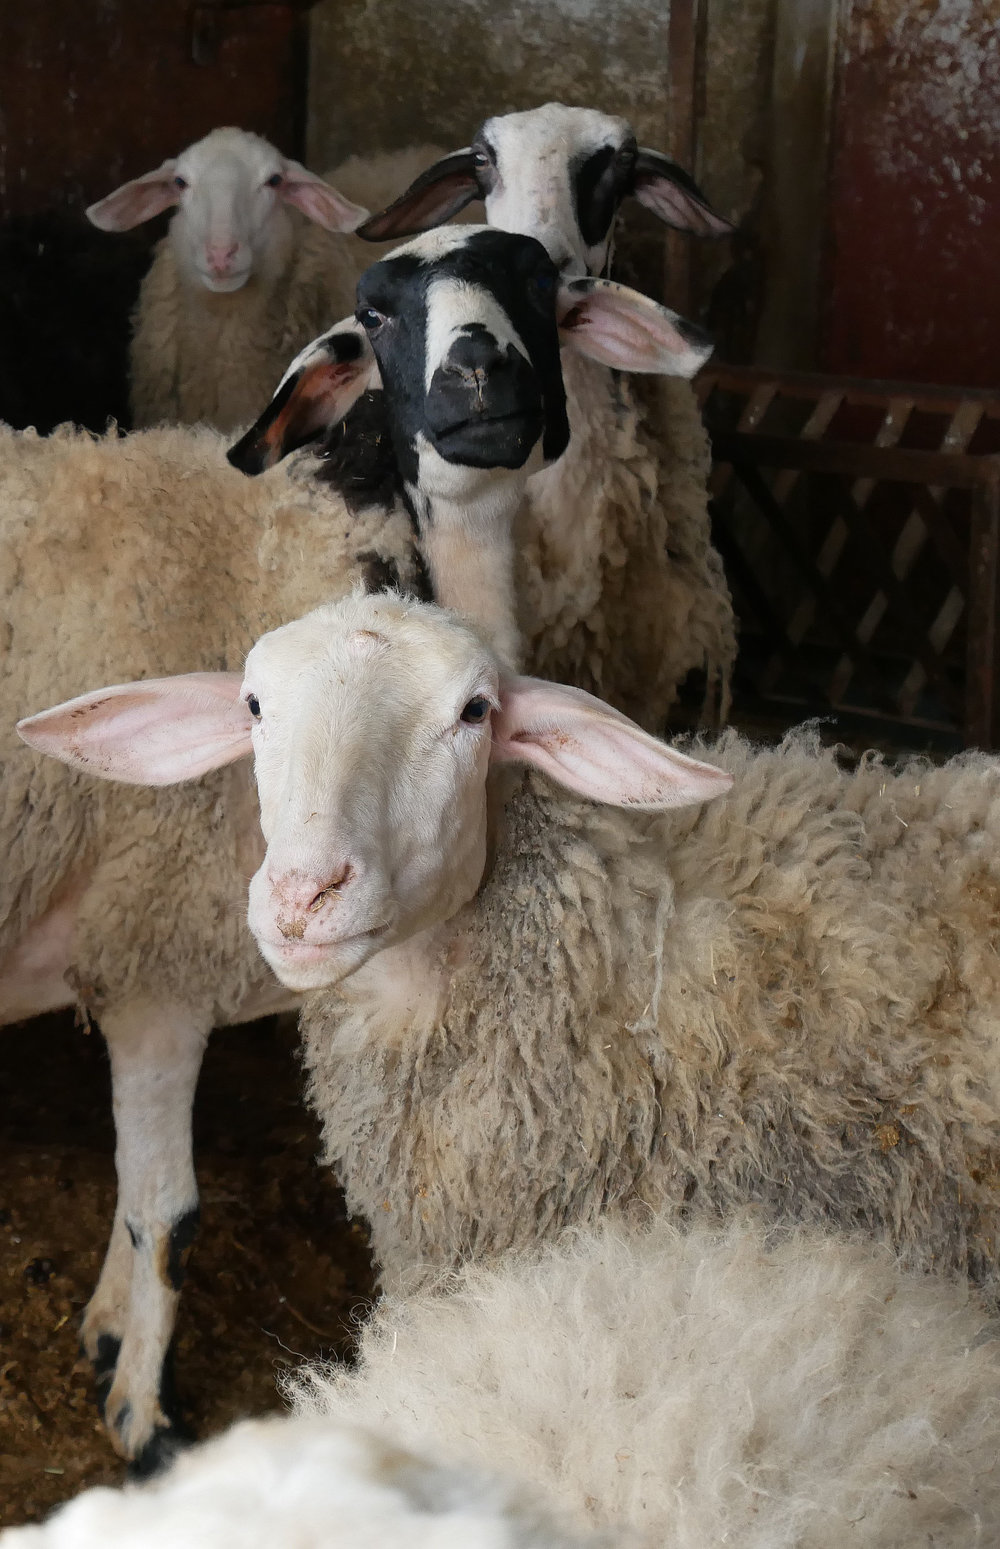 Awassi sheep in a household in the town of Samoa - West Bank